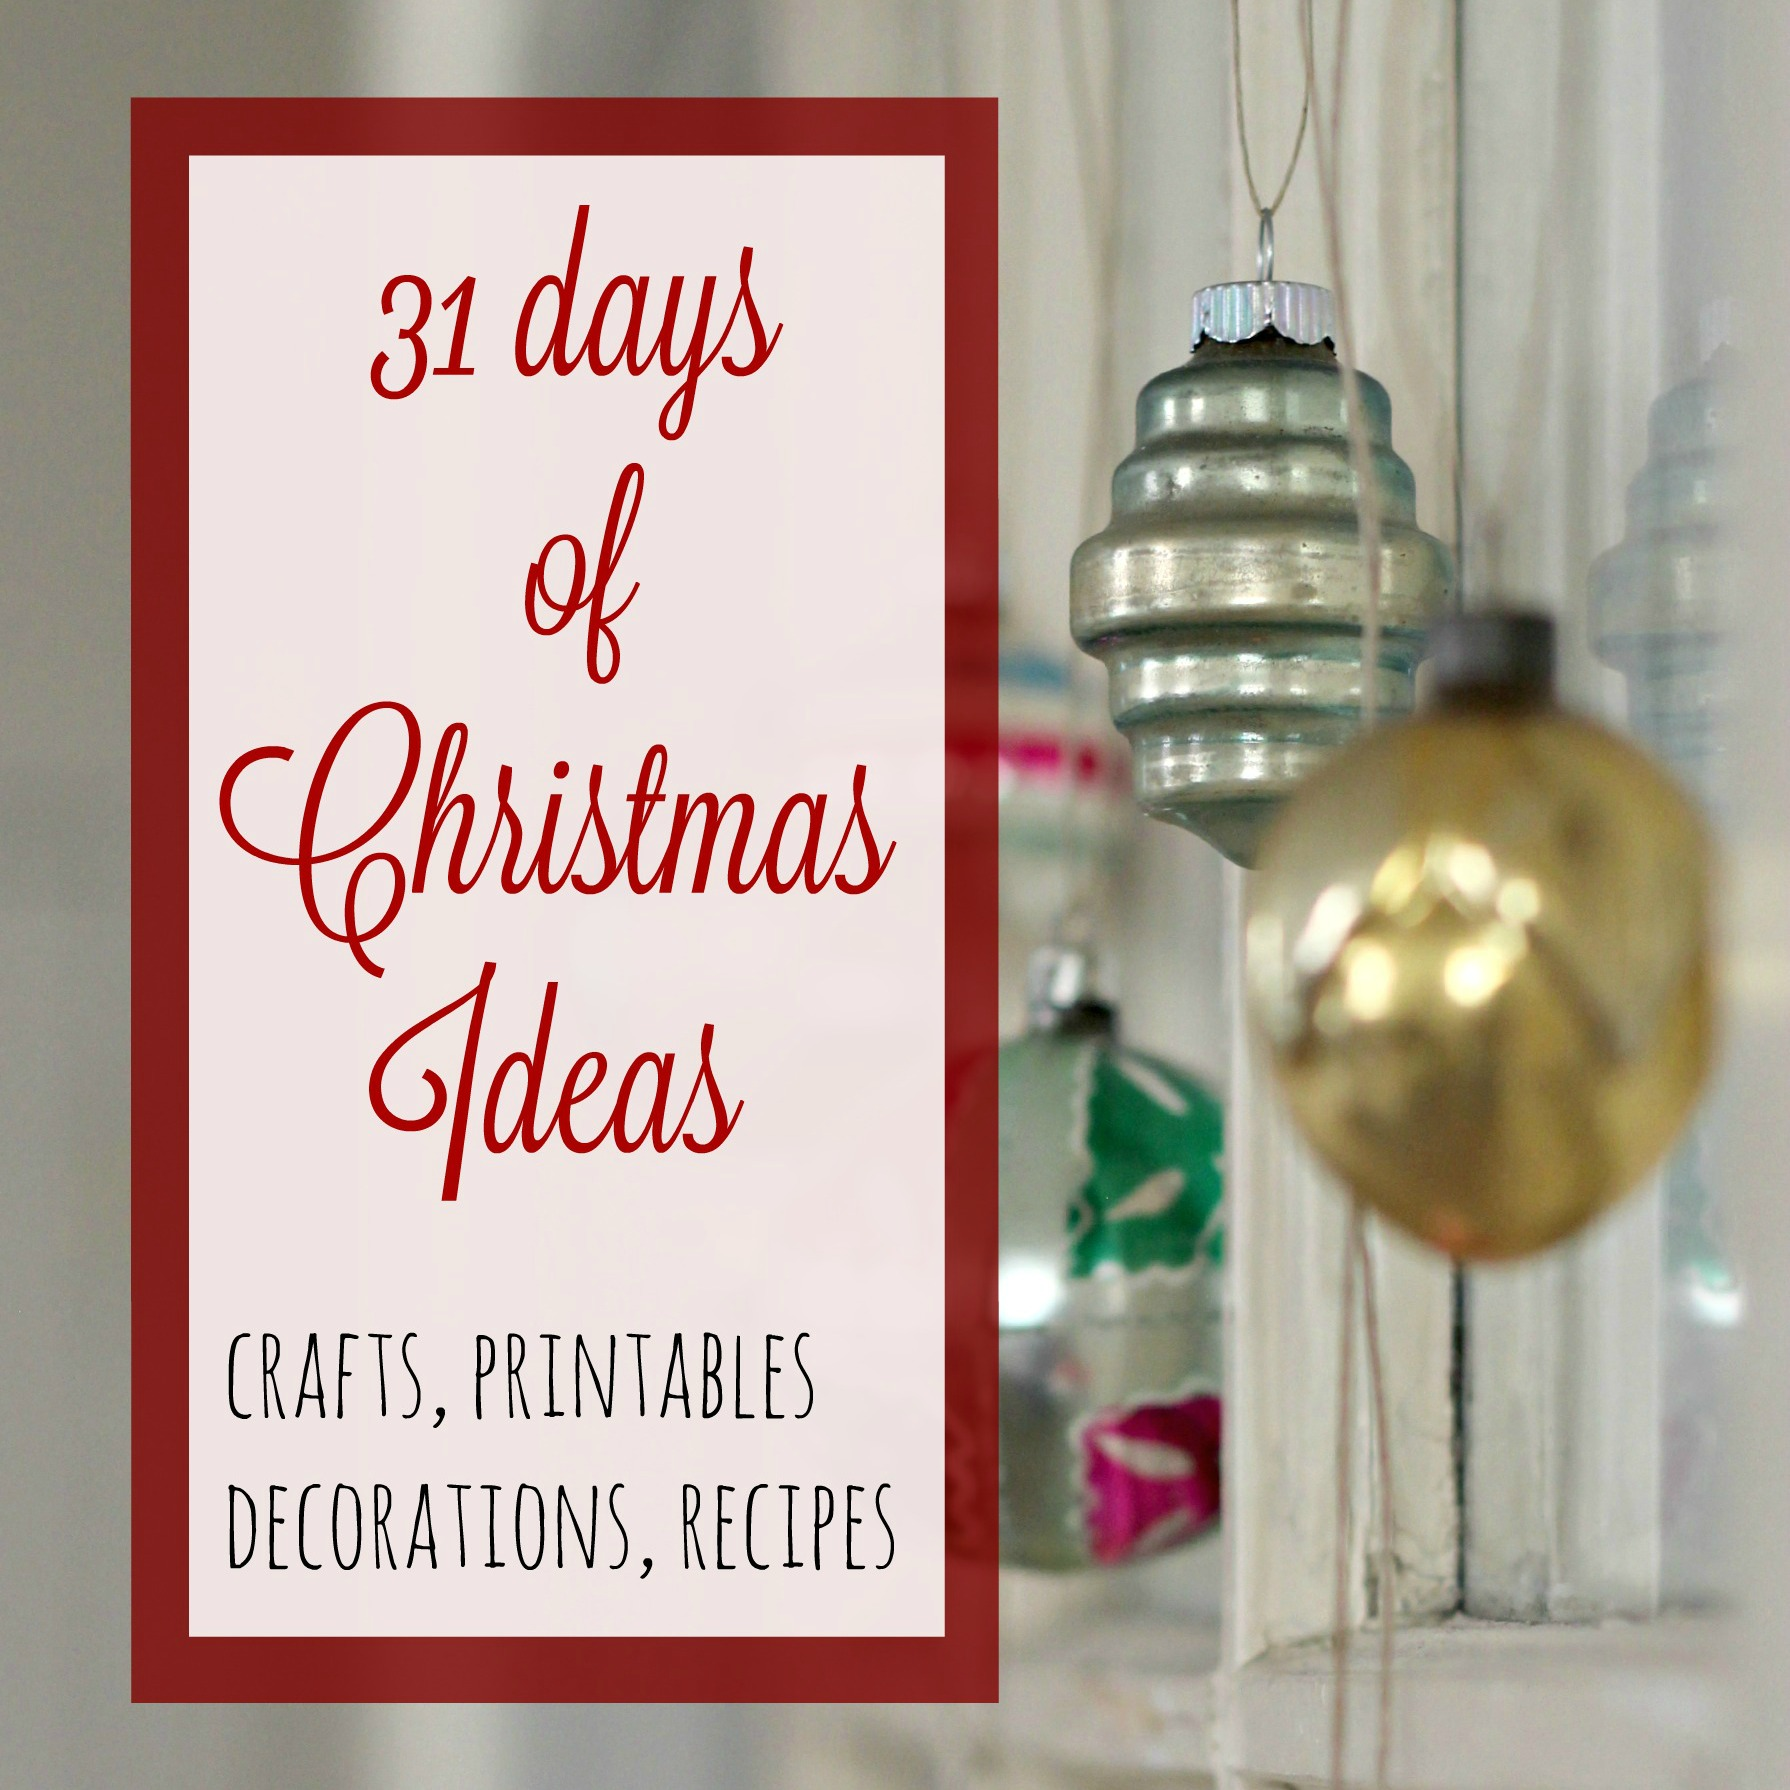 31 Days of Christmas Ideas